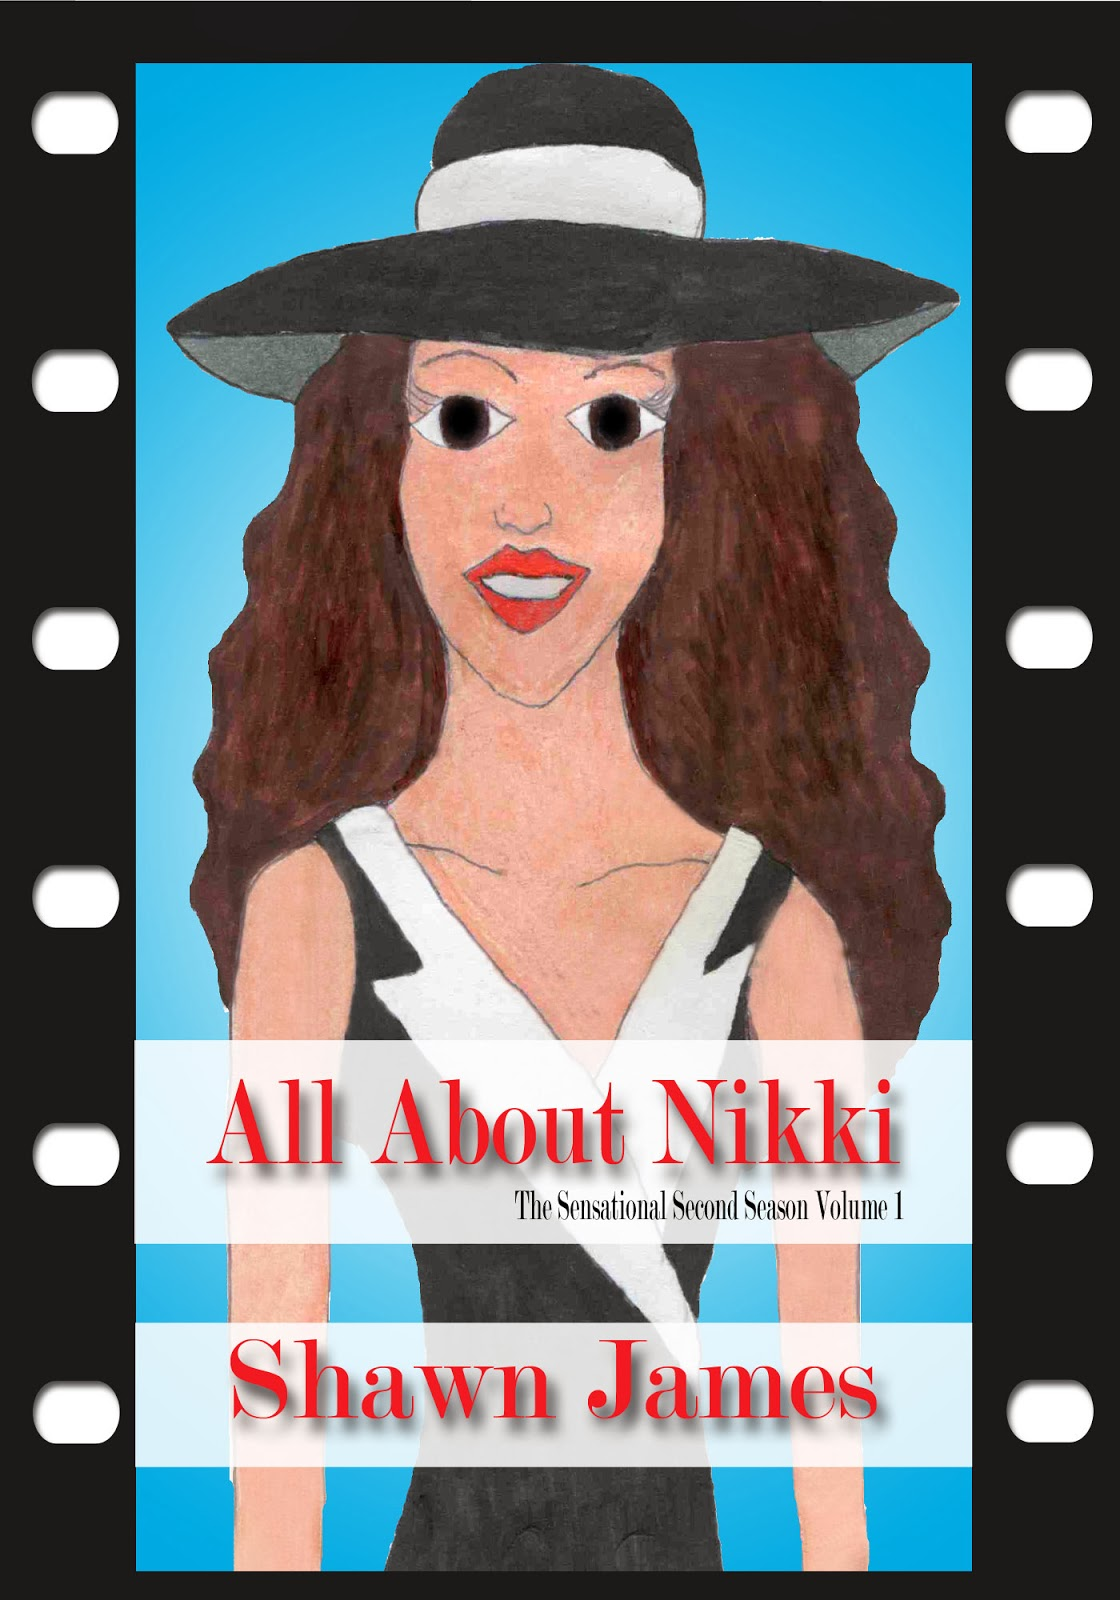 All About Nikki's Second Season Has Performed Well As A Free Ebook On  Smashwords Over There It's One Of The Most Popular Books In My Catalog  With Over